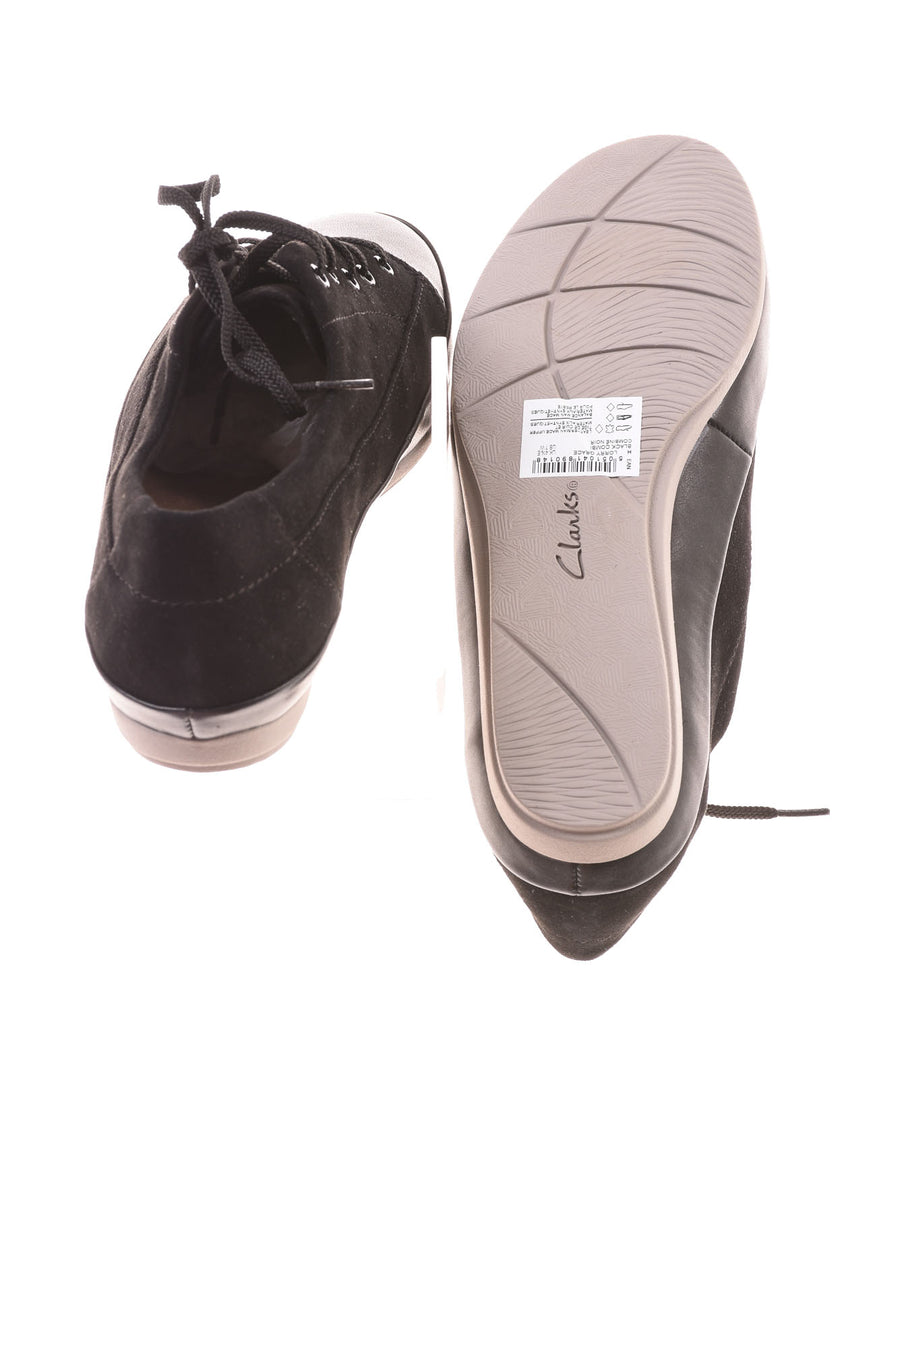 Women's Wide Shoes By Clarks